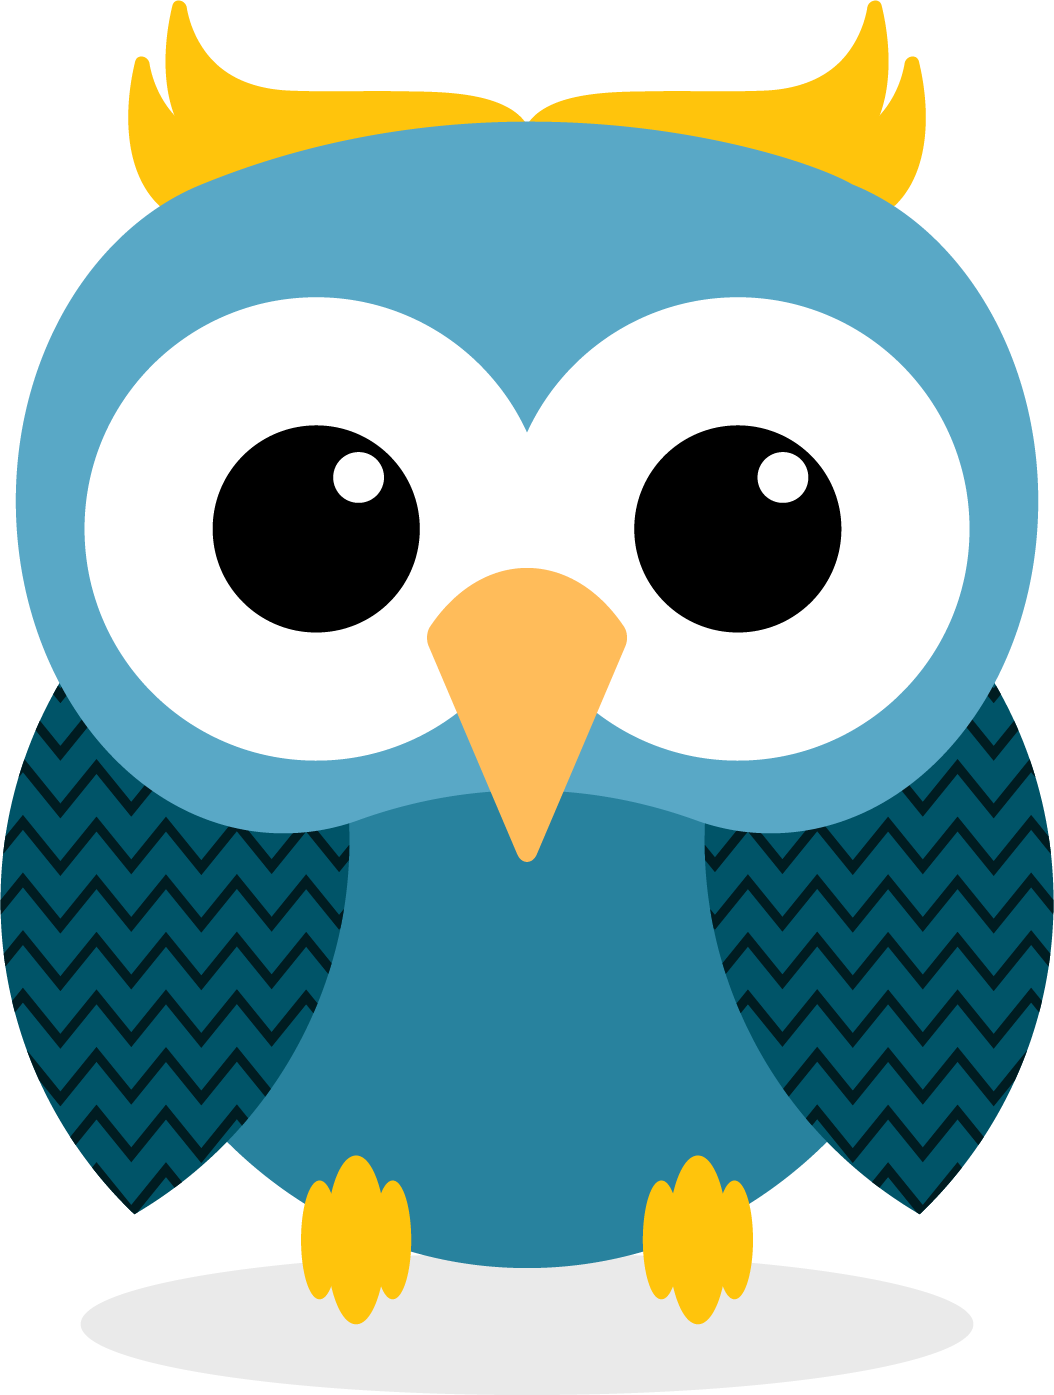 Clipart sports owl, Clipart sports owl Transparent FREE for.